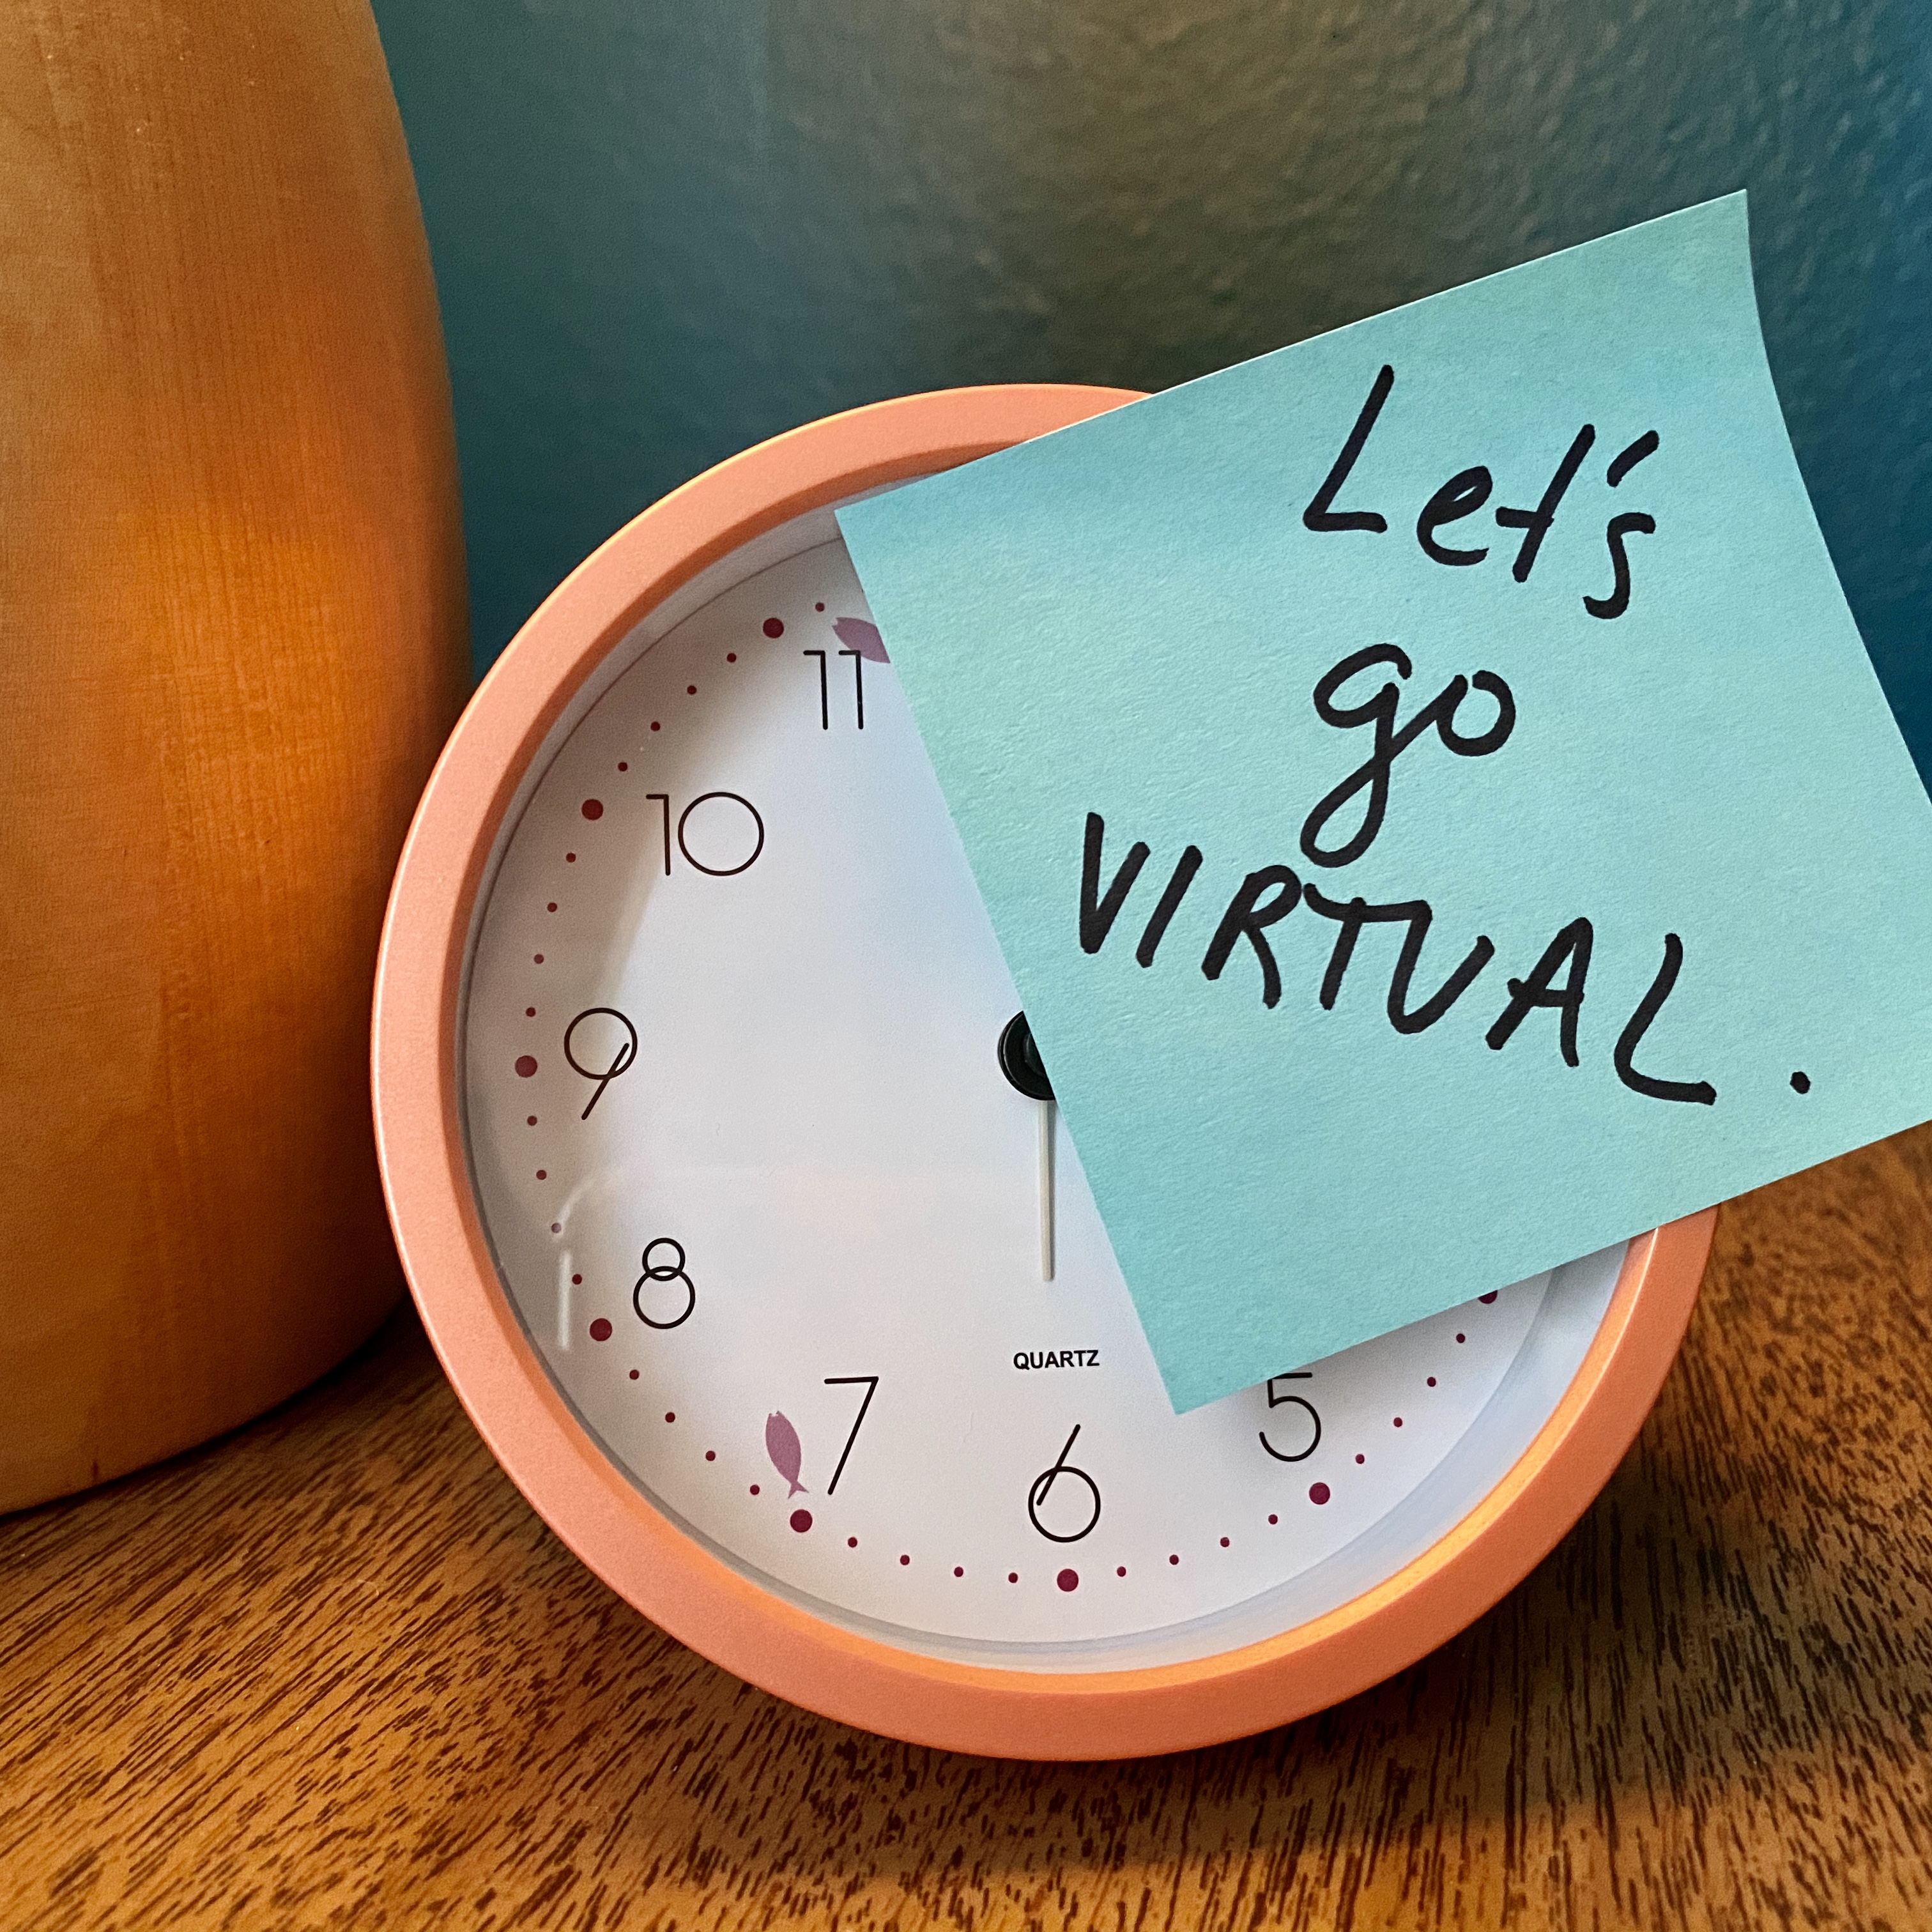 Let's Go Virtual Post-It on Clock: Time for virtual content strategy conferences